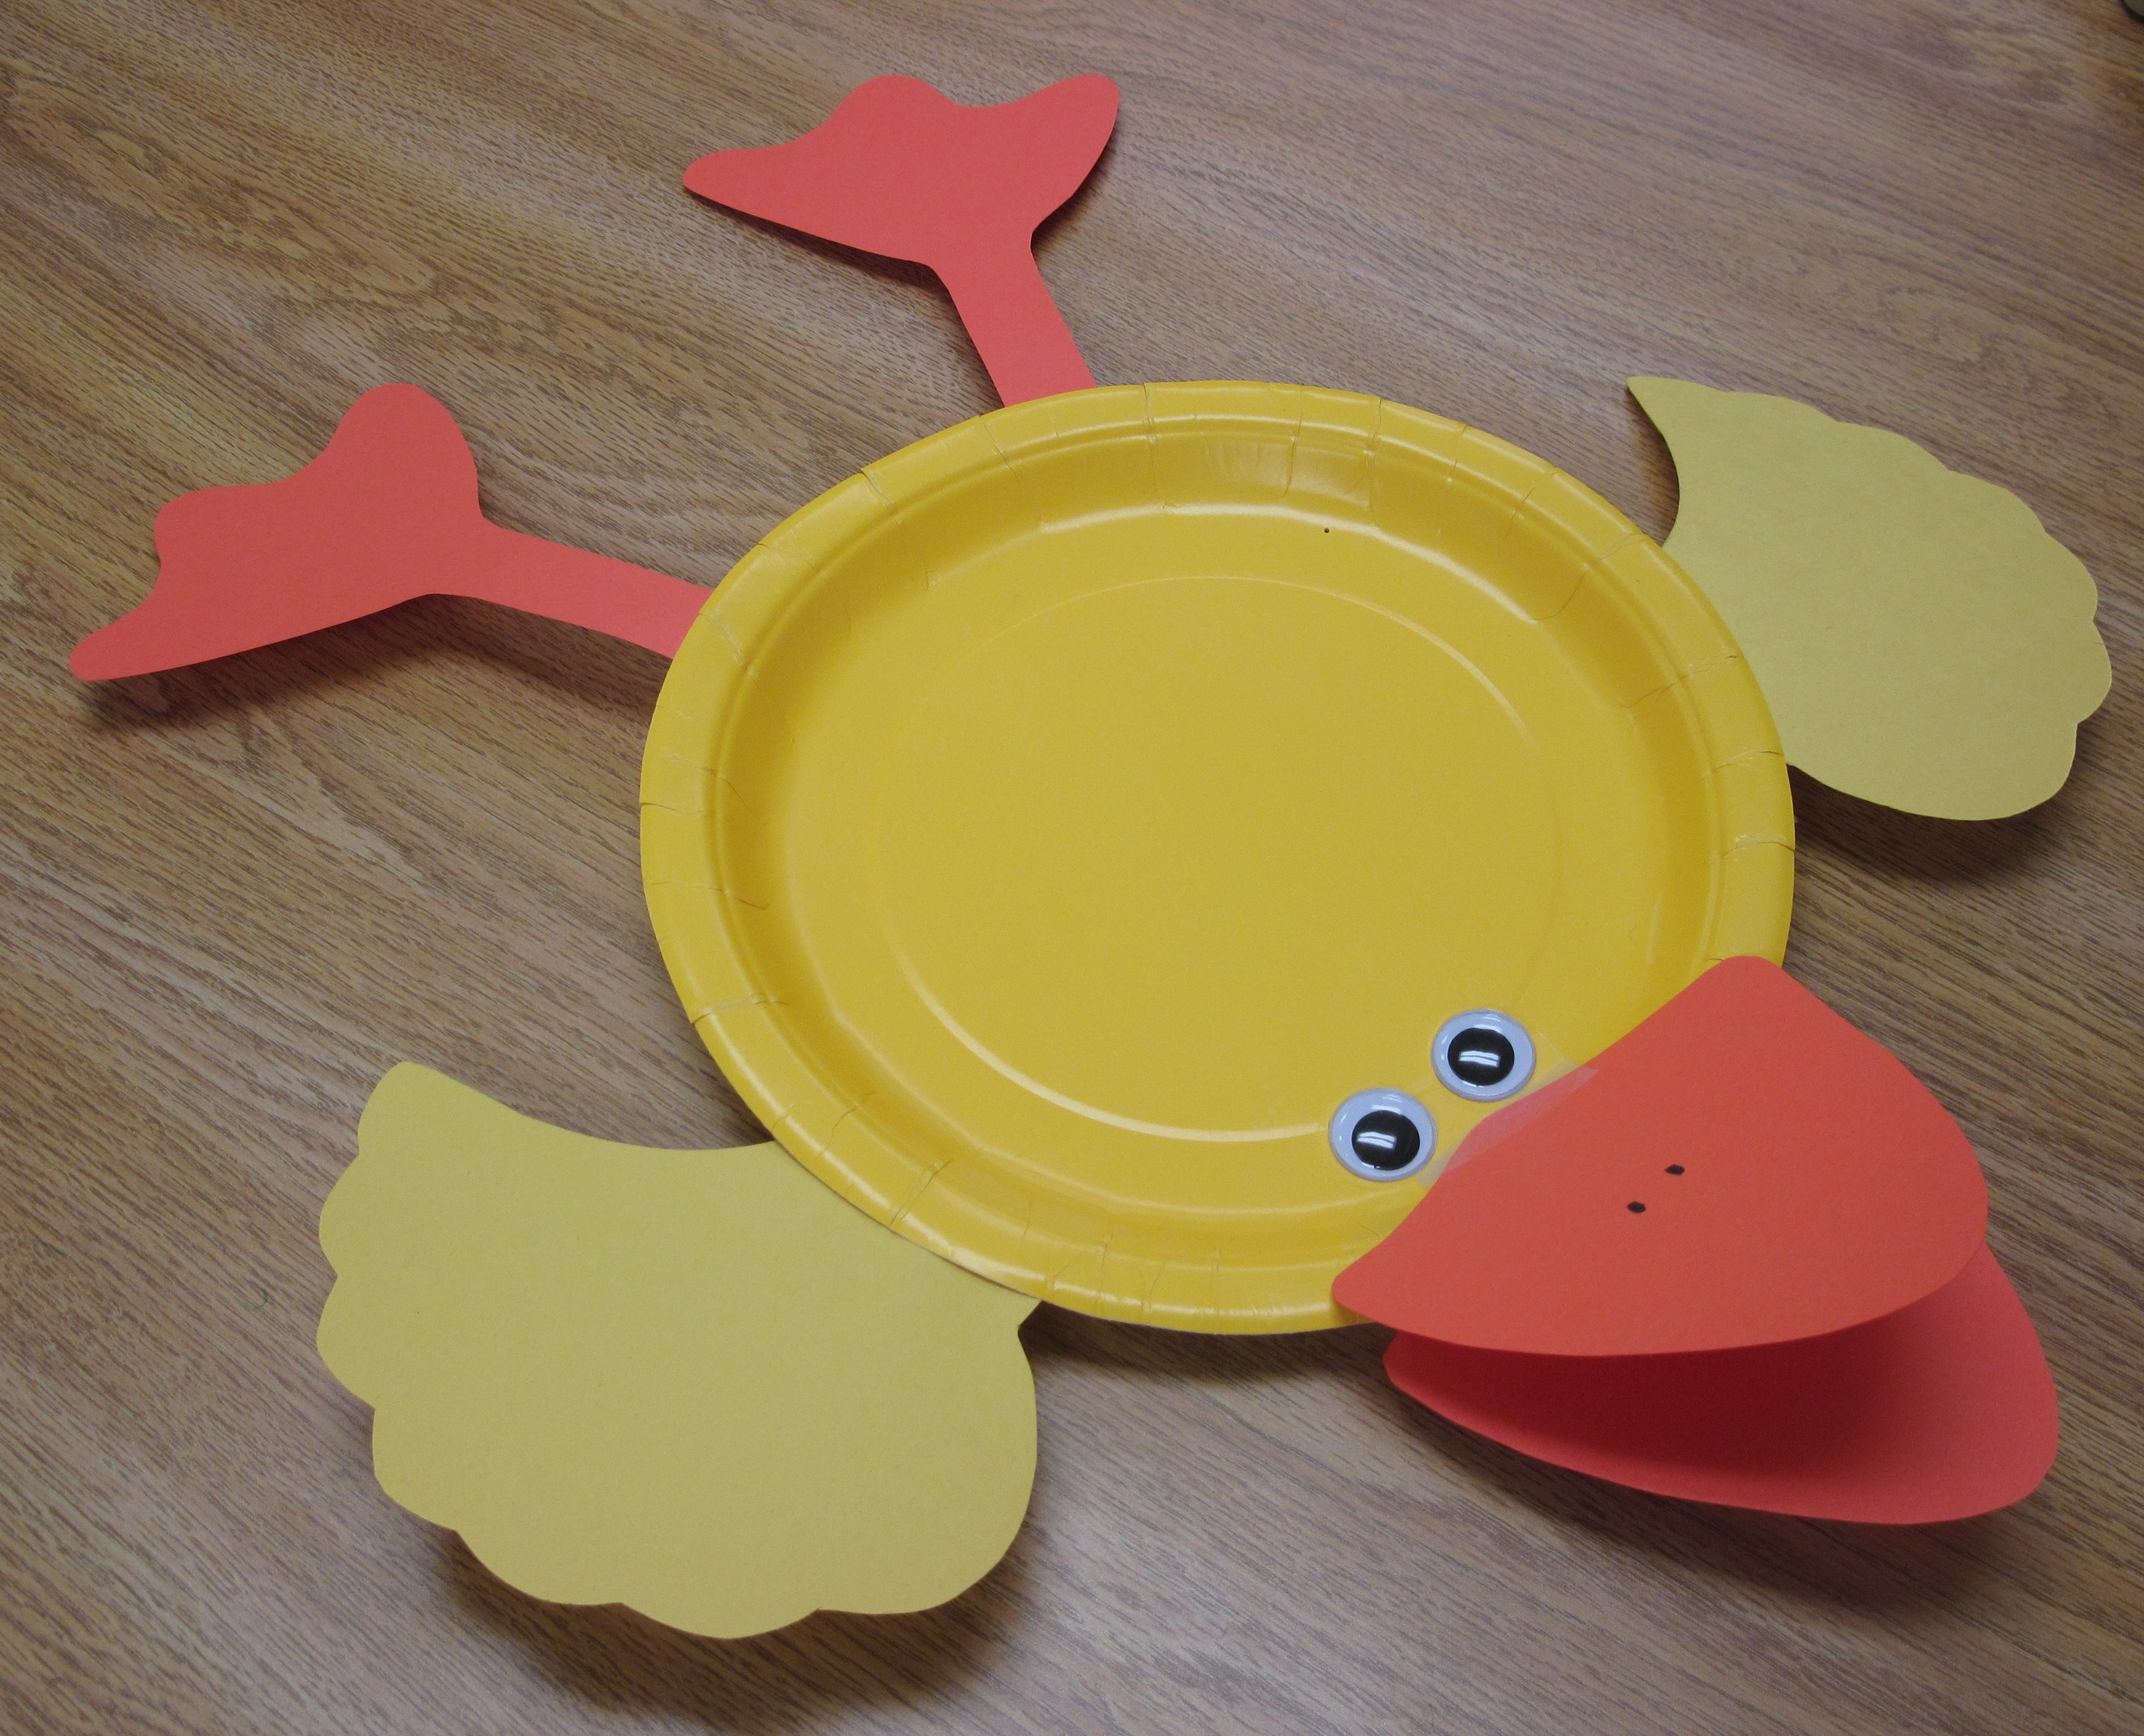 This is a simplified version of the paper plate duck found on Danielle